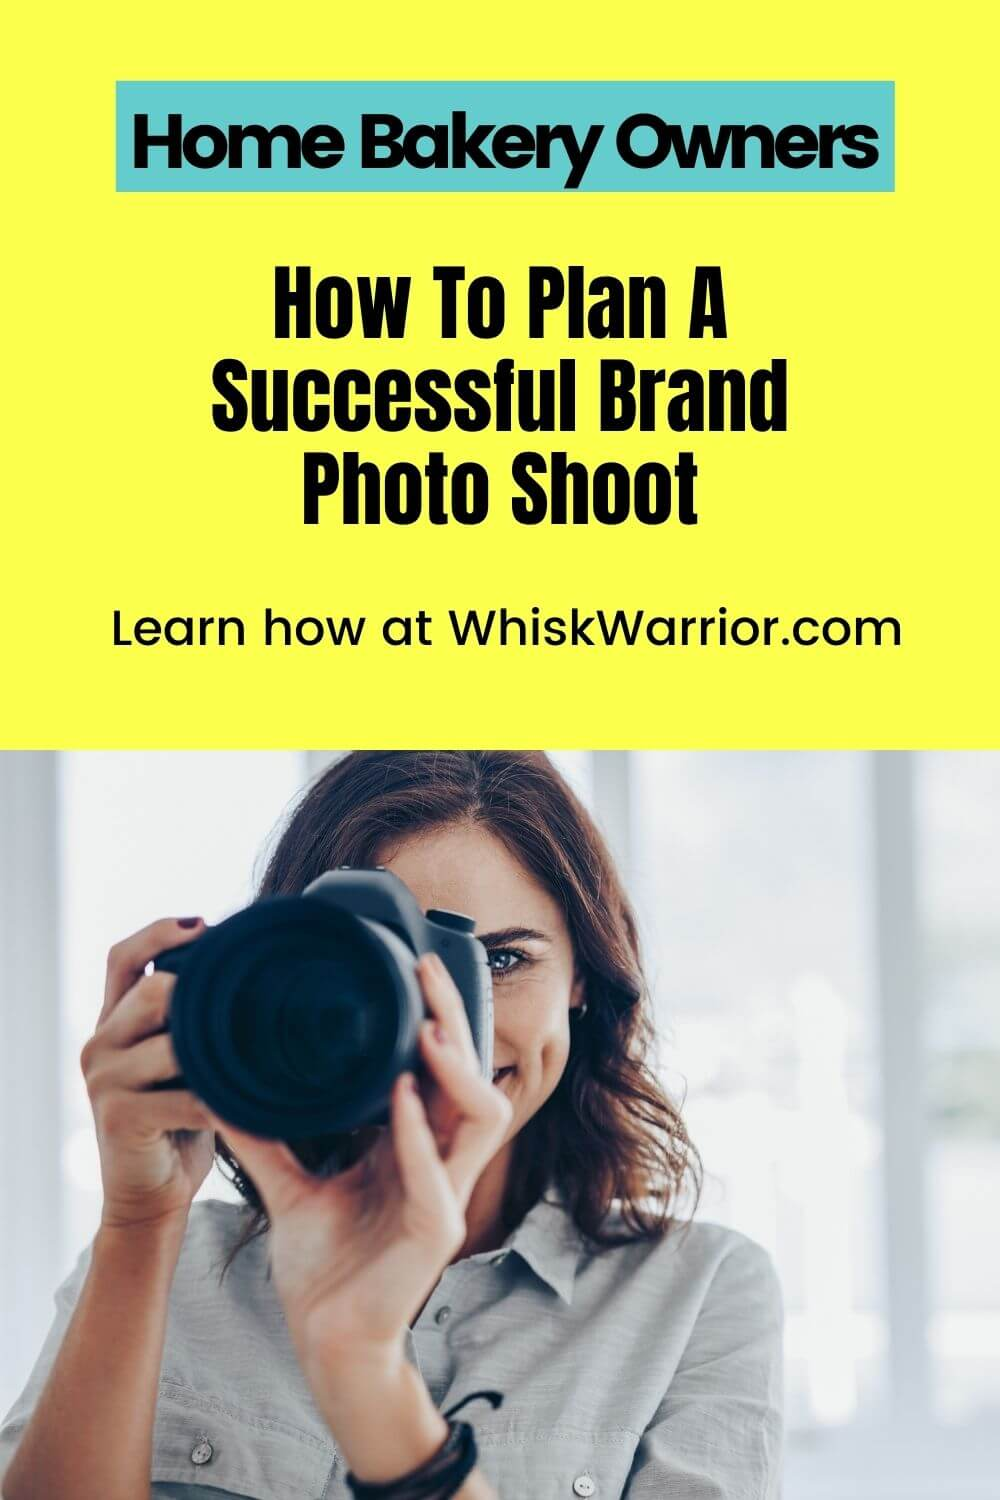 A step-by-step guide on how to plan a successful brand photo shoot for your home bakery business.